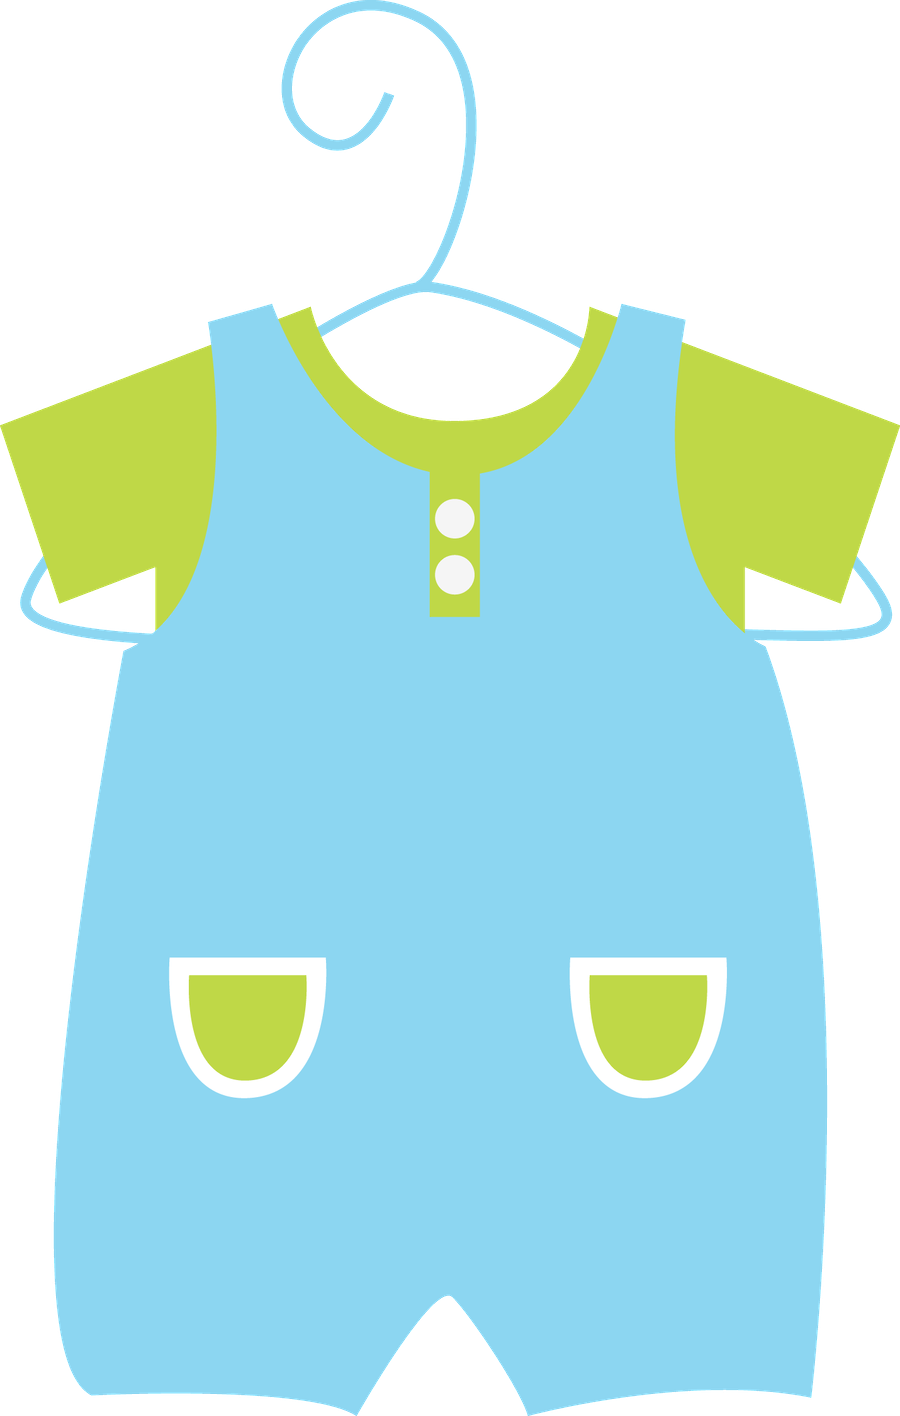 827b13484288 Baby Clothes Clipart at GetDrawings.com